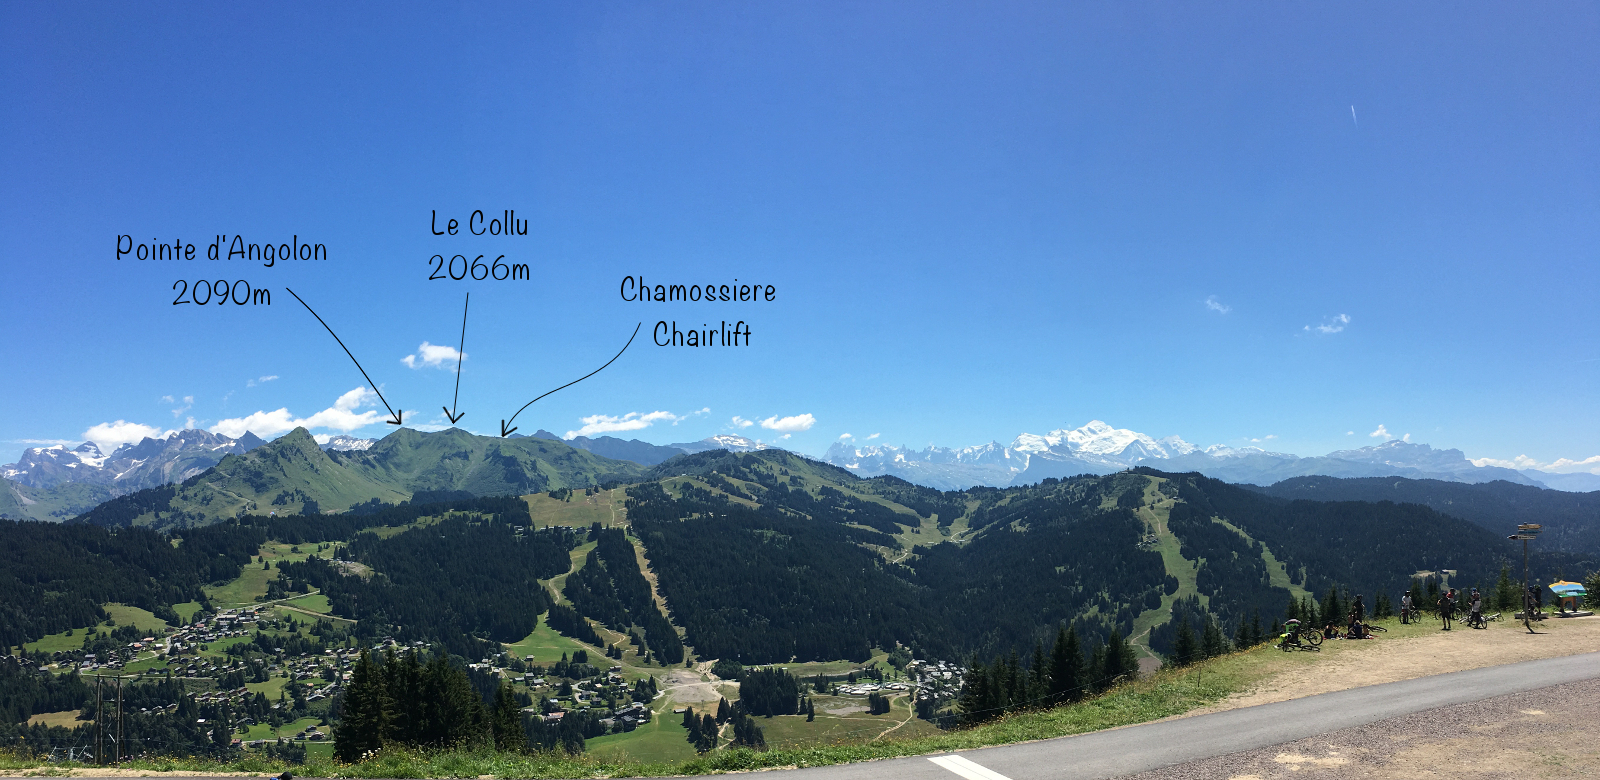 View over to Pointe d'Angolon and the Chamossiere lift from the Bellevedere restaurant on Mont Chery, Les Gets.